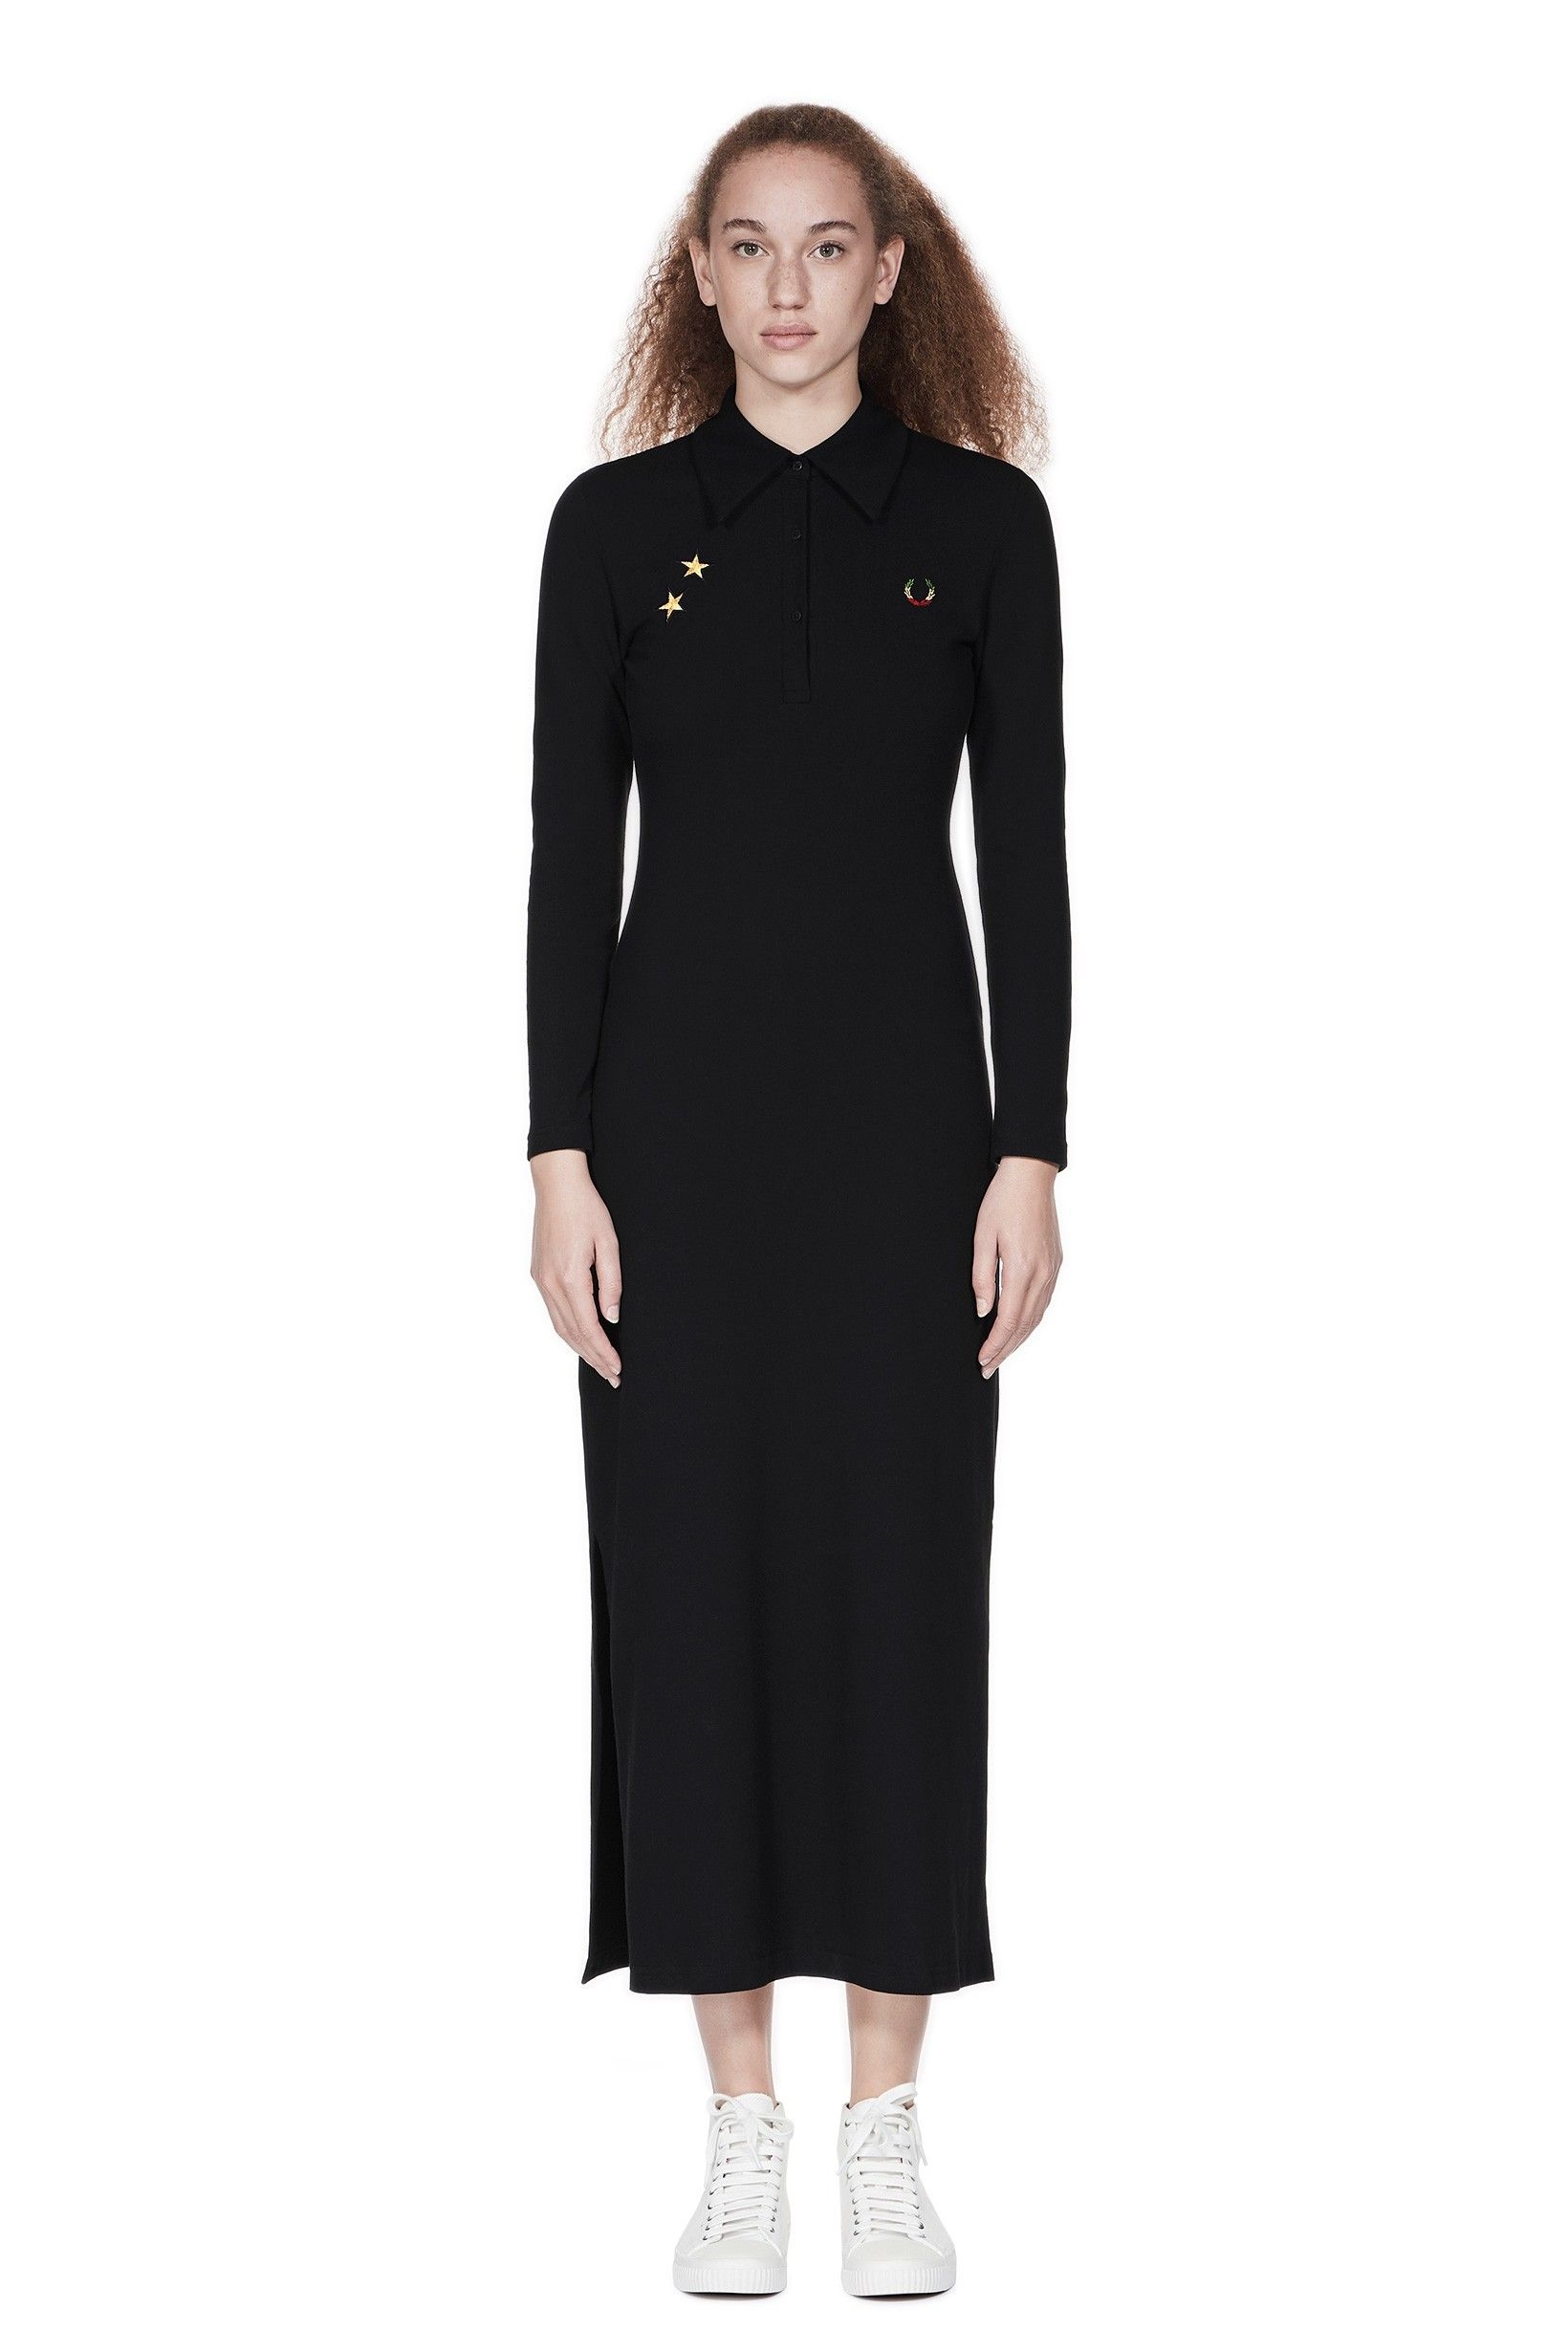 c599ad48e9688 Fred Perry - Bella Freud Long Piqué Dress Black | style | Fred perry ...